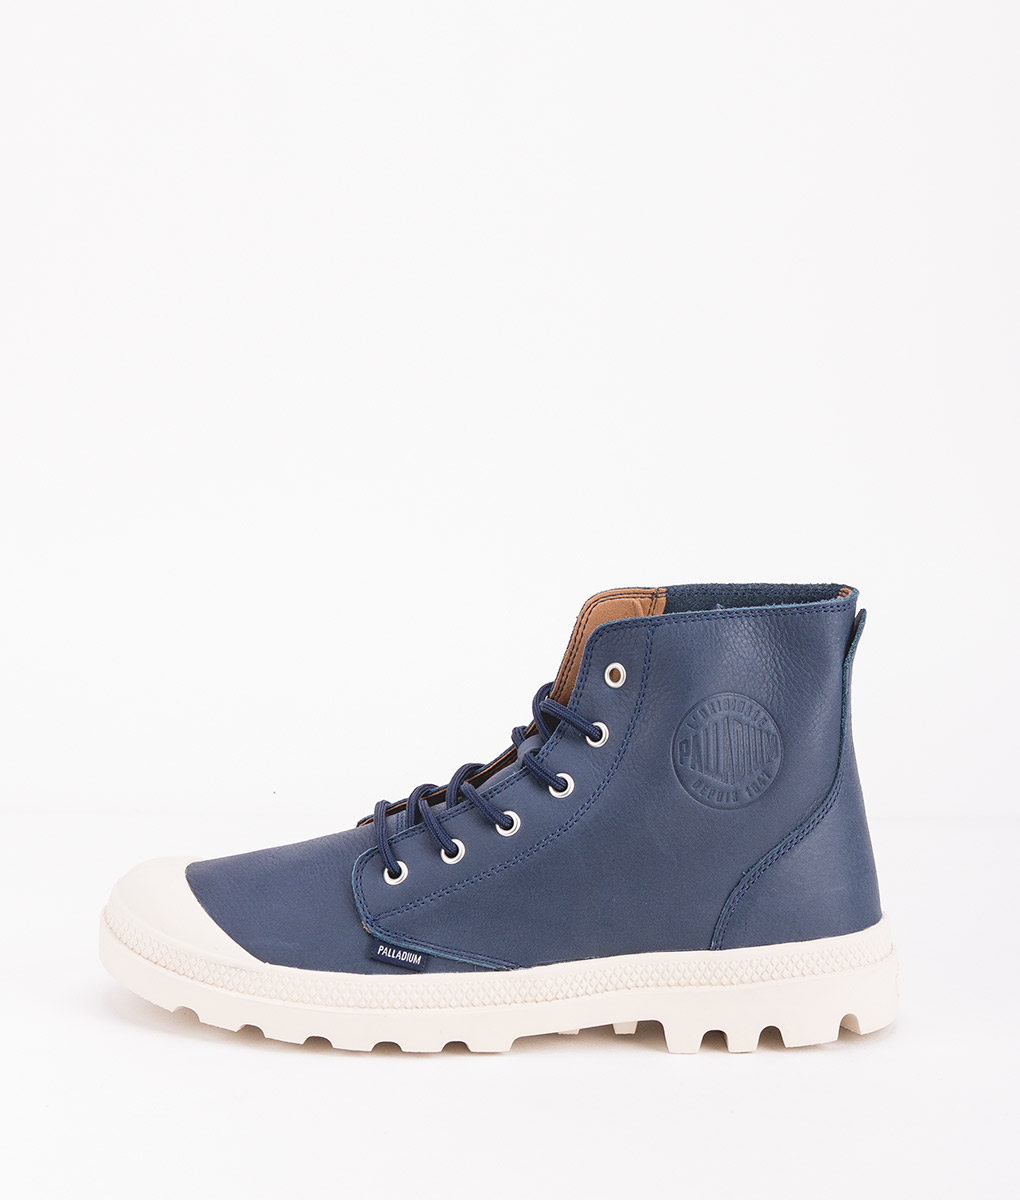 PALLADIUM Men Sneakers 75750 PAMPA HI LEATHER UL, Dress Blue Birch 119.99